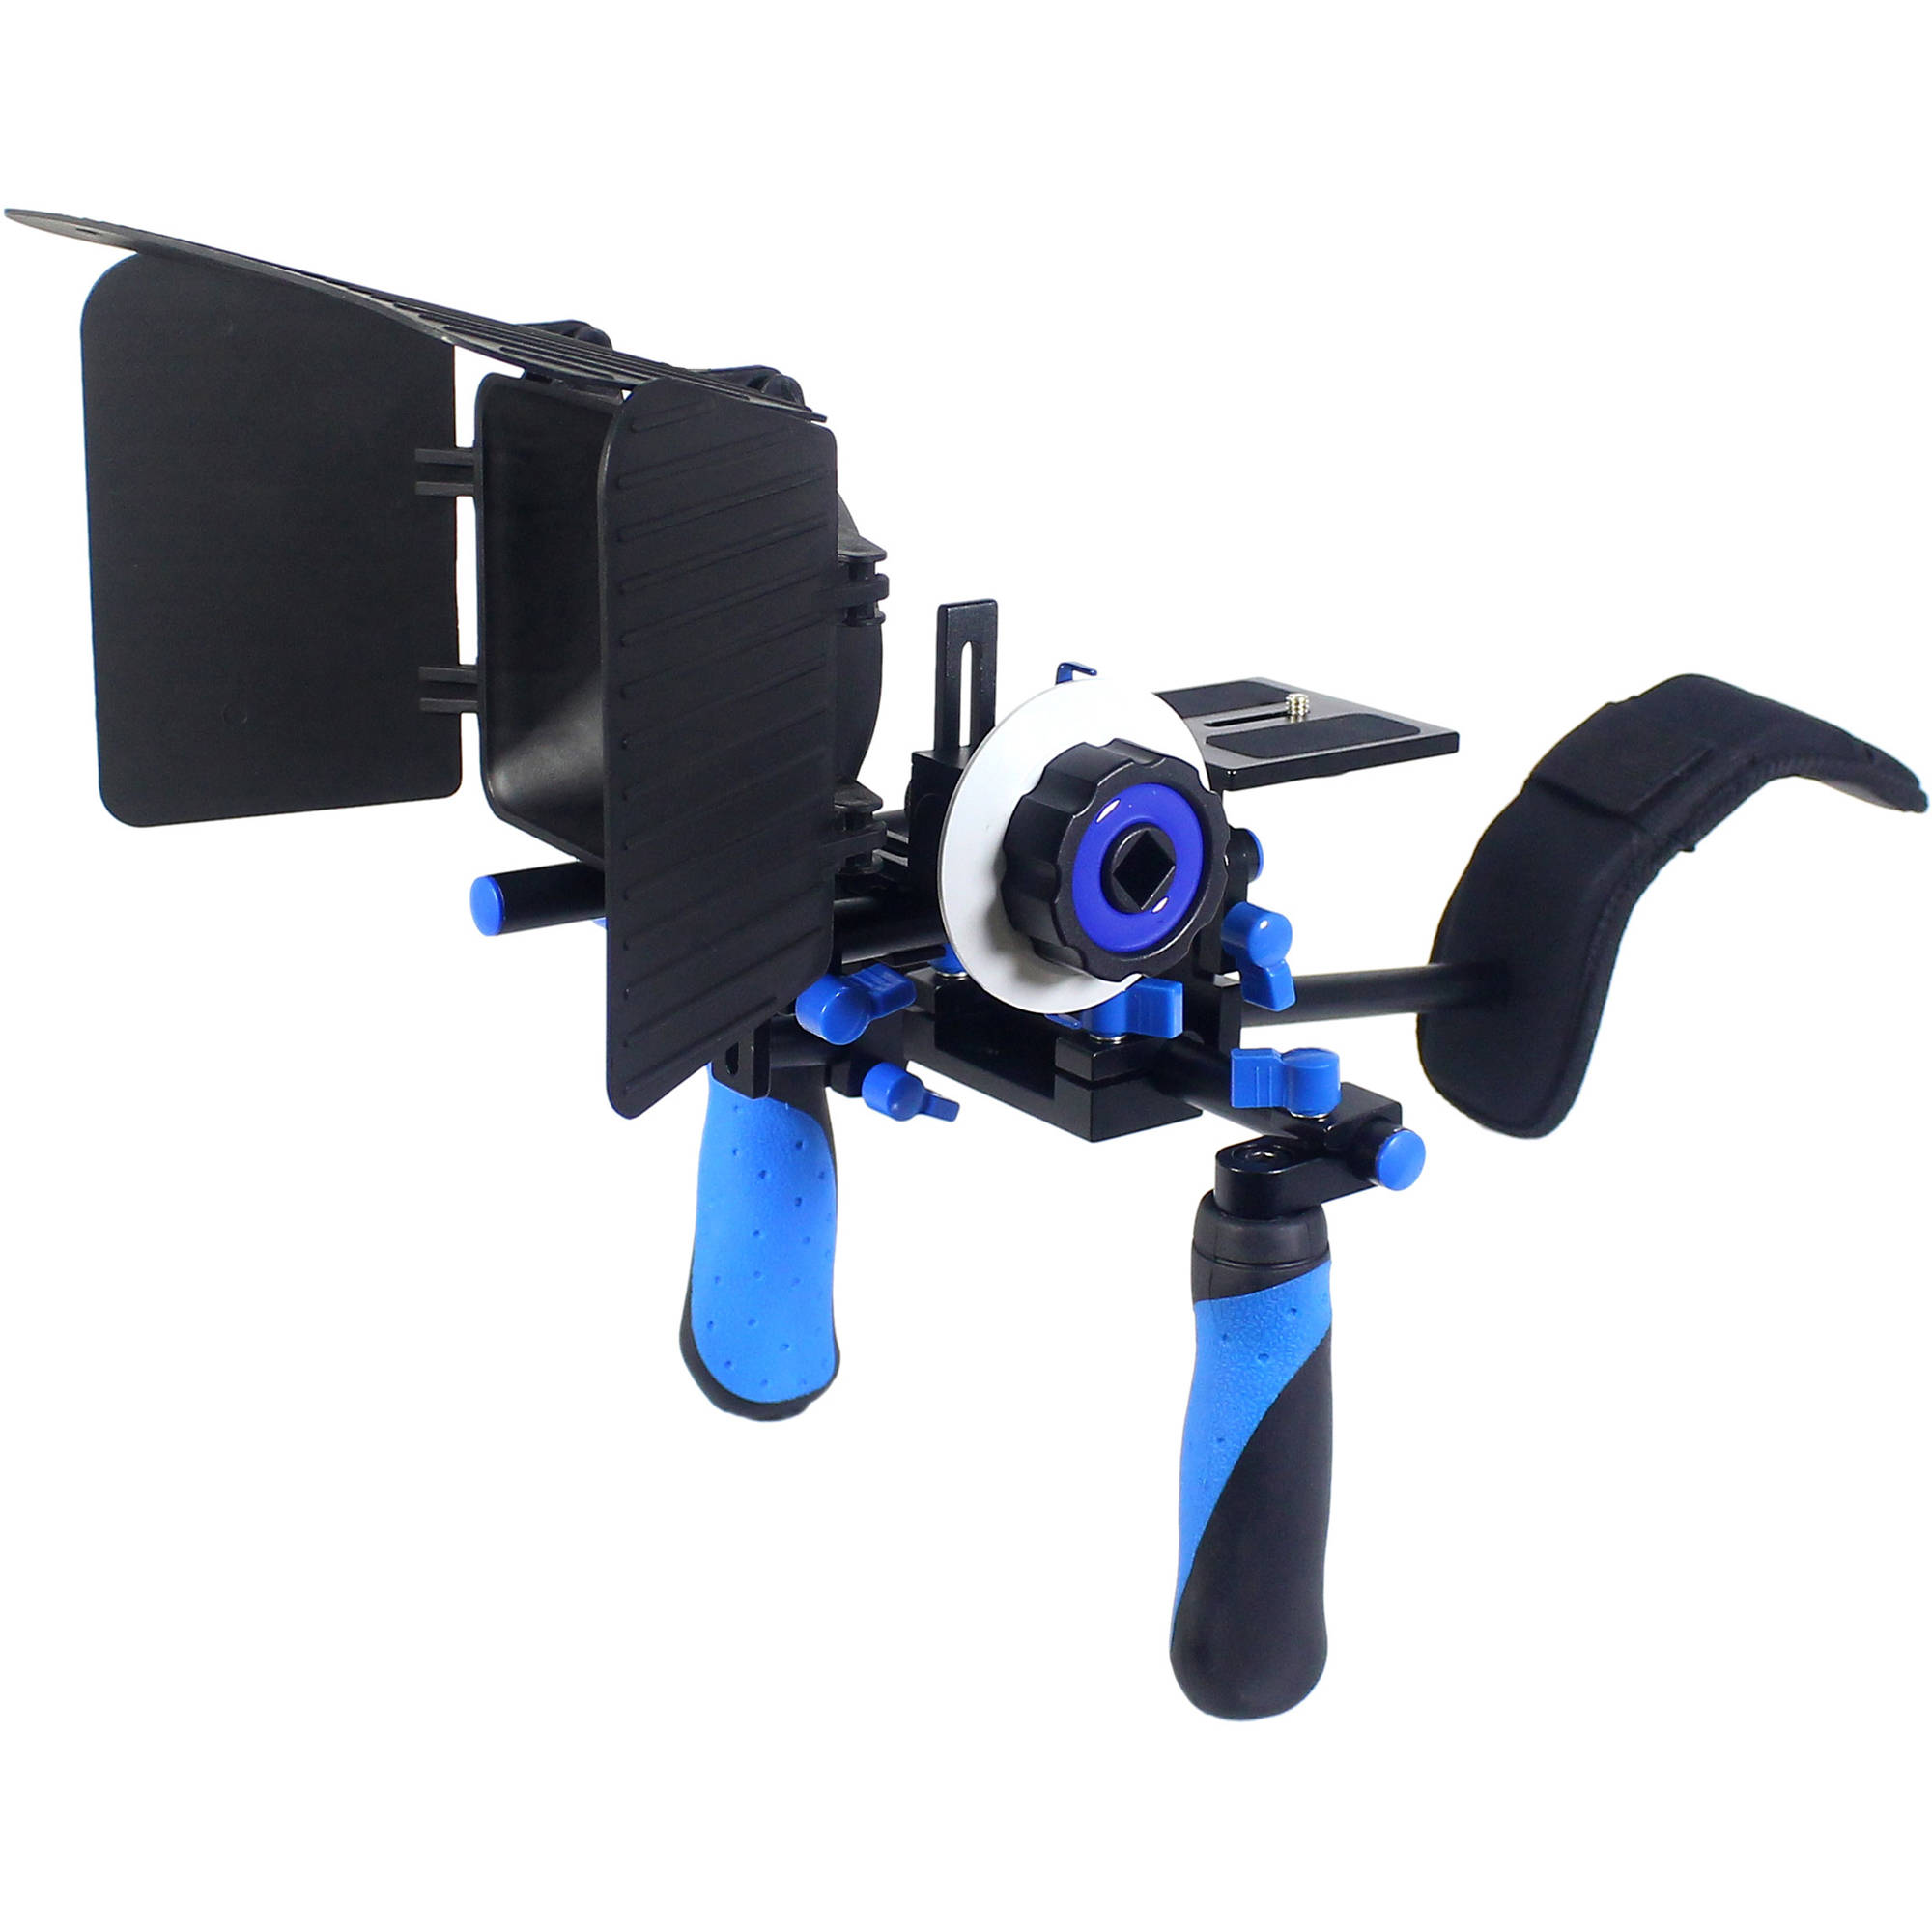 Camera Camera Dslr Rig dslr video supports rigs page 2 bh photo ivation rig system for or camera blue